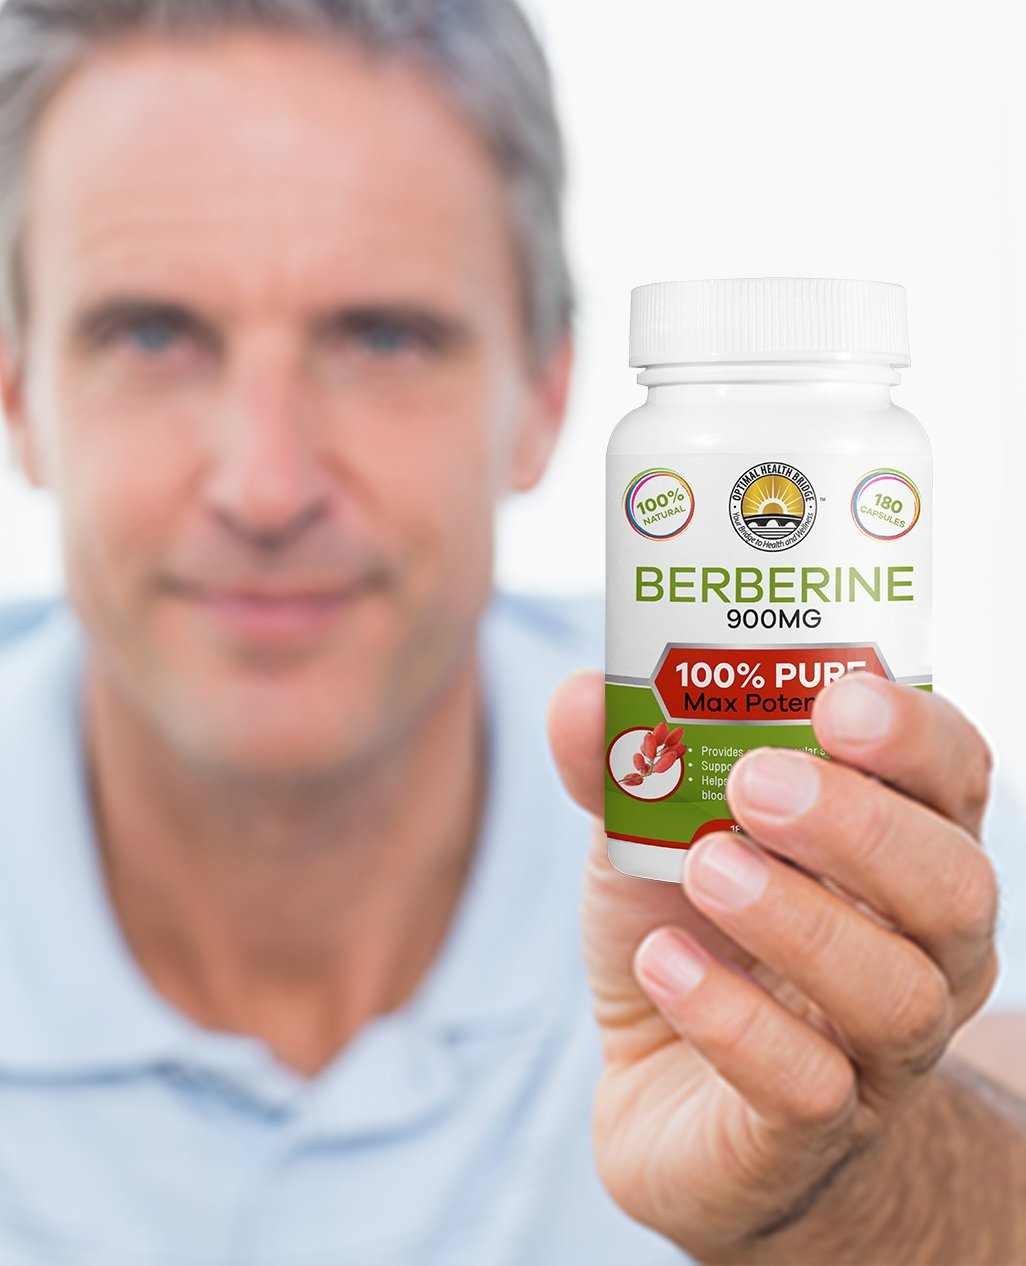 180 Capsules Pure Berberine Proper Dosage 3X - Bio Active Wonder - Crazy Effective! New Product Launch Pricing!